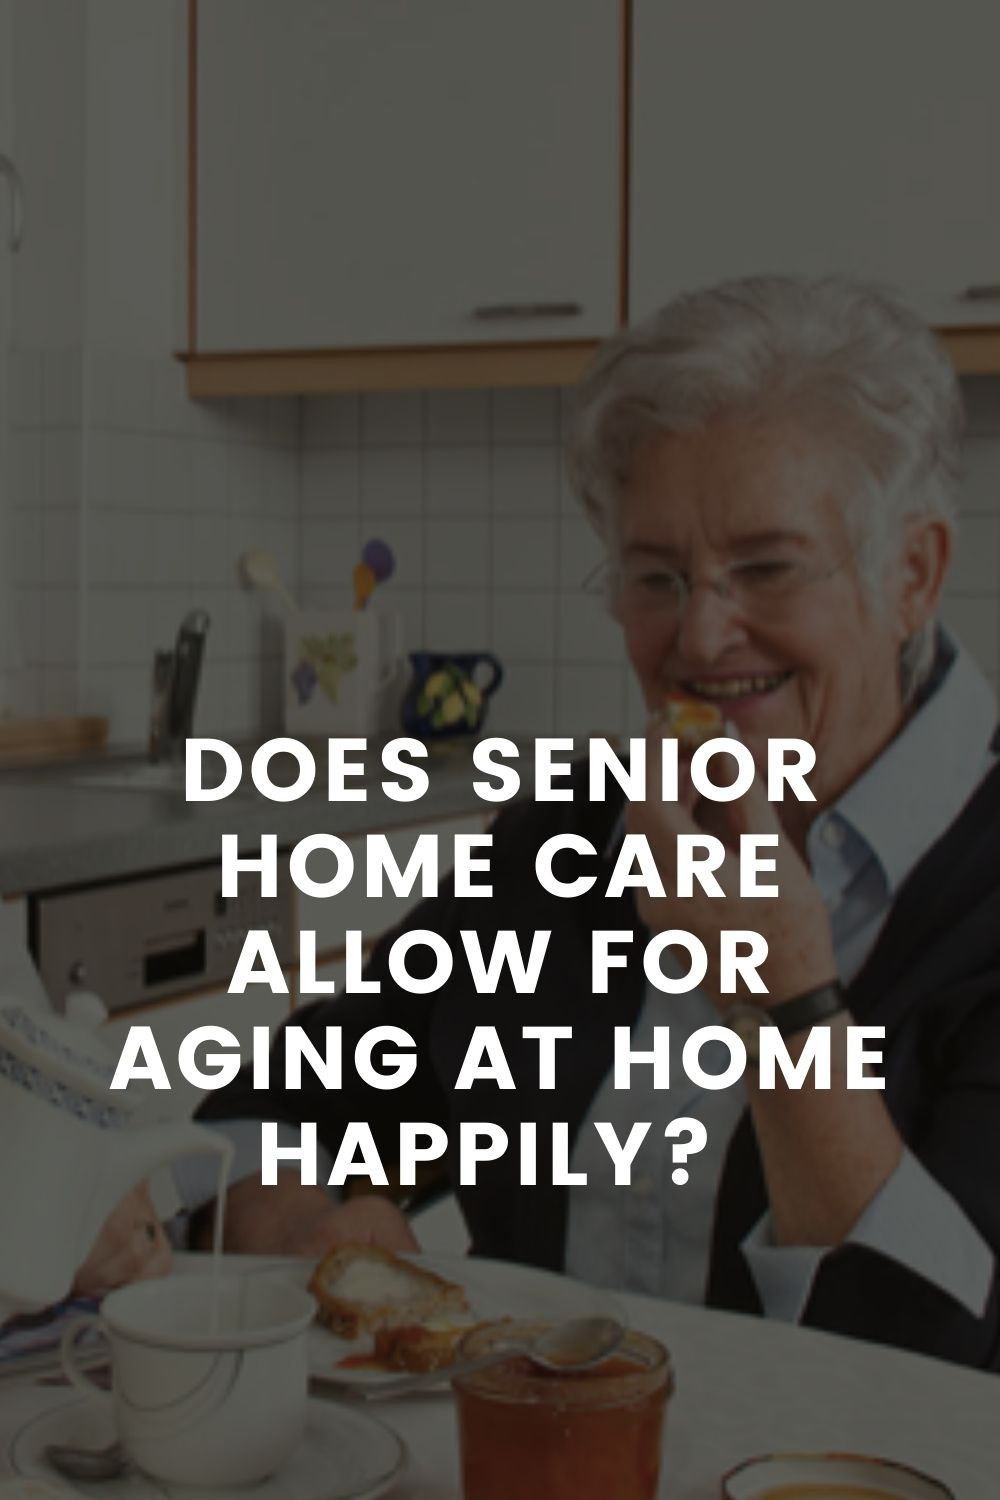 Does Senior Home Care Allow For Aging at Home Happily?